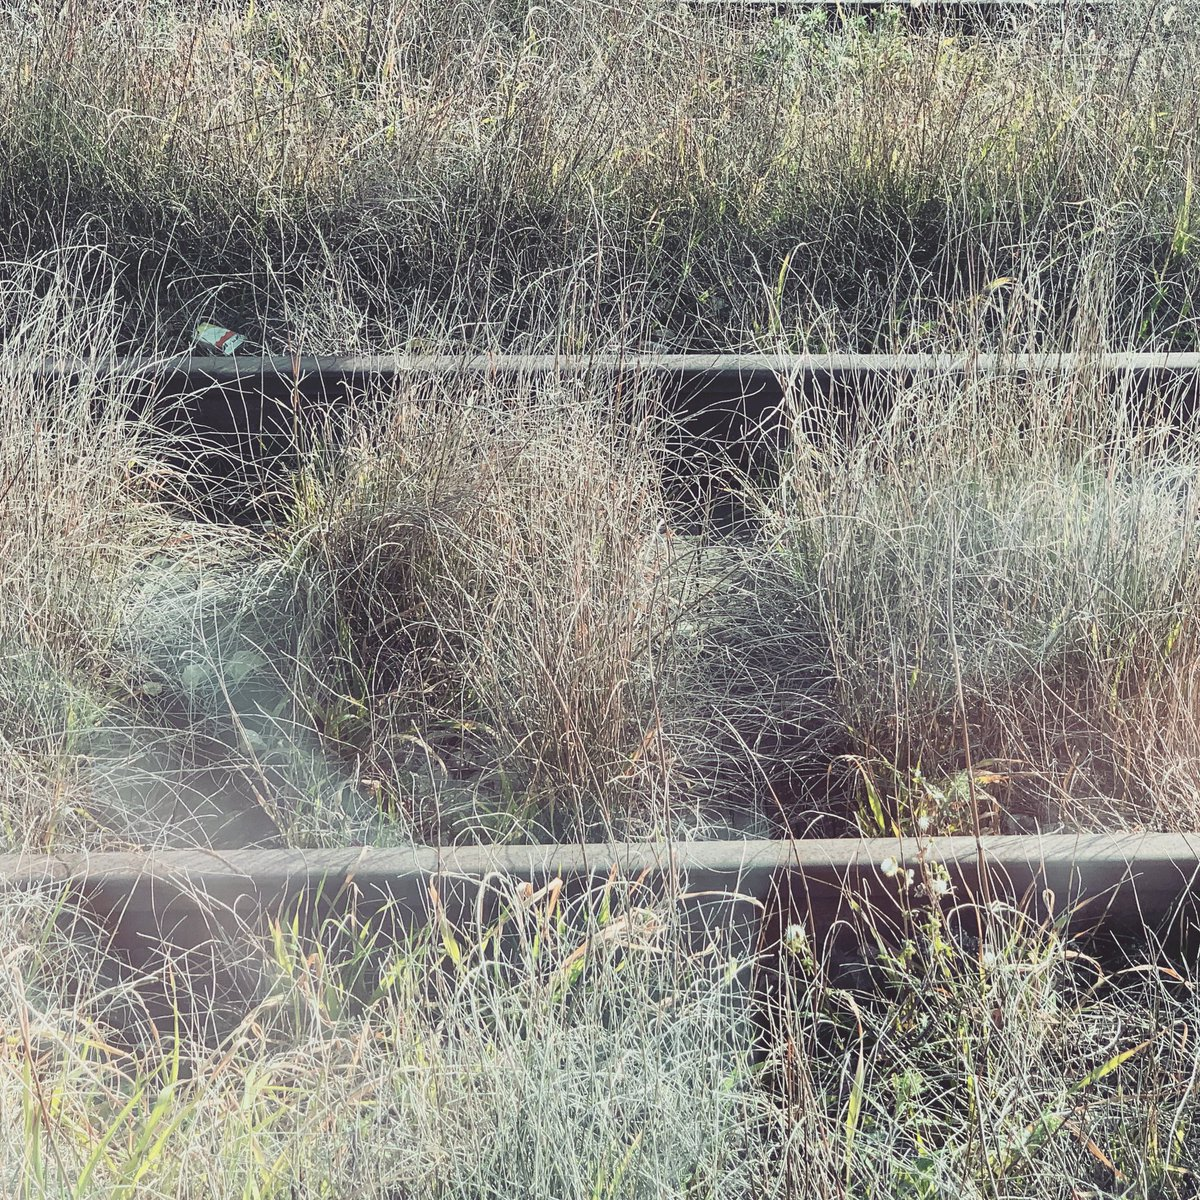 Abandoned rail track #windowseat #solitary #photography